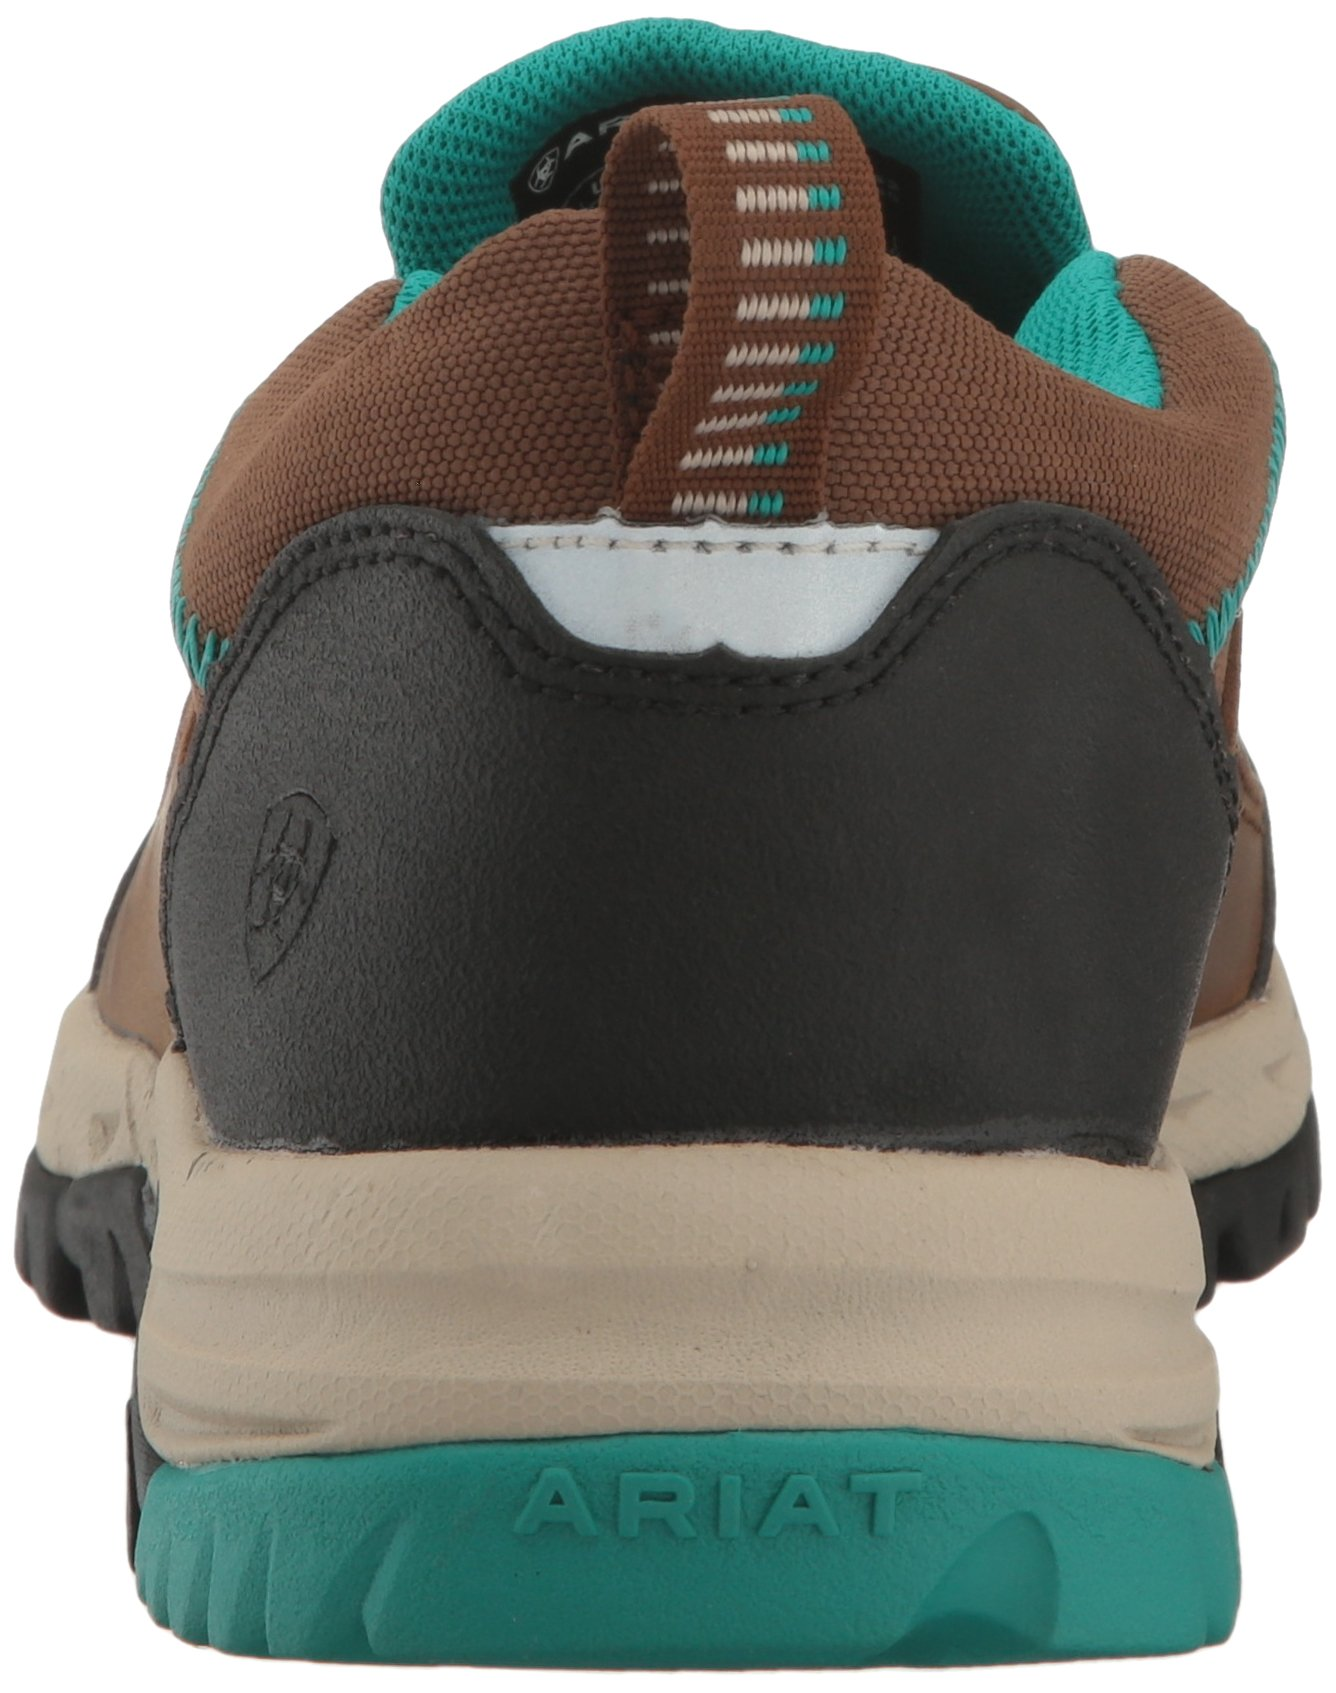 Ariat Women's Skyline Slip-on Hiking Shoe, Taupe, 8 B US by Ariat (Image #2)